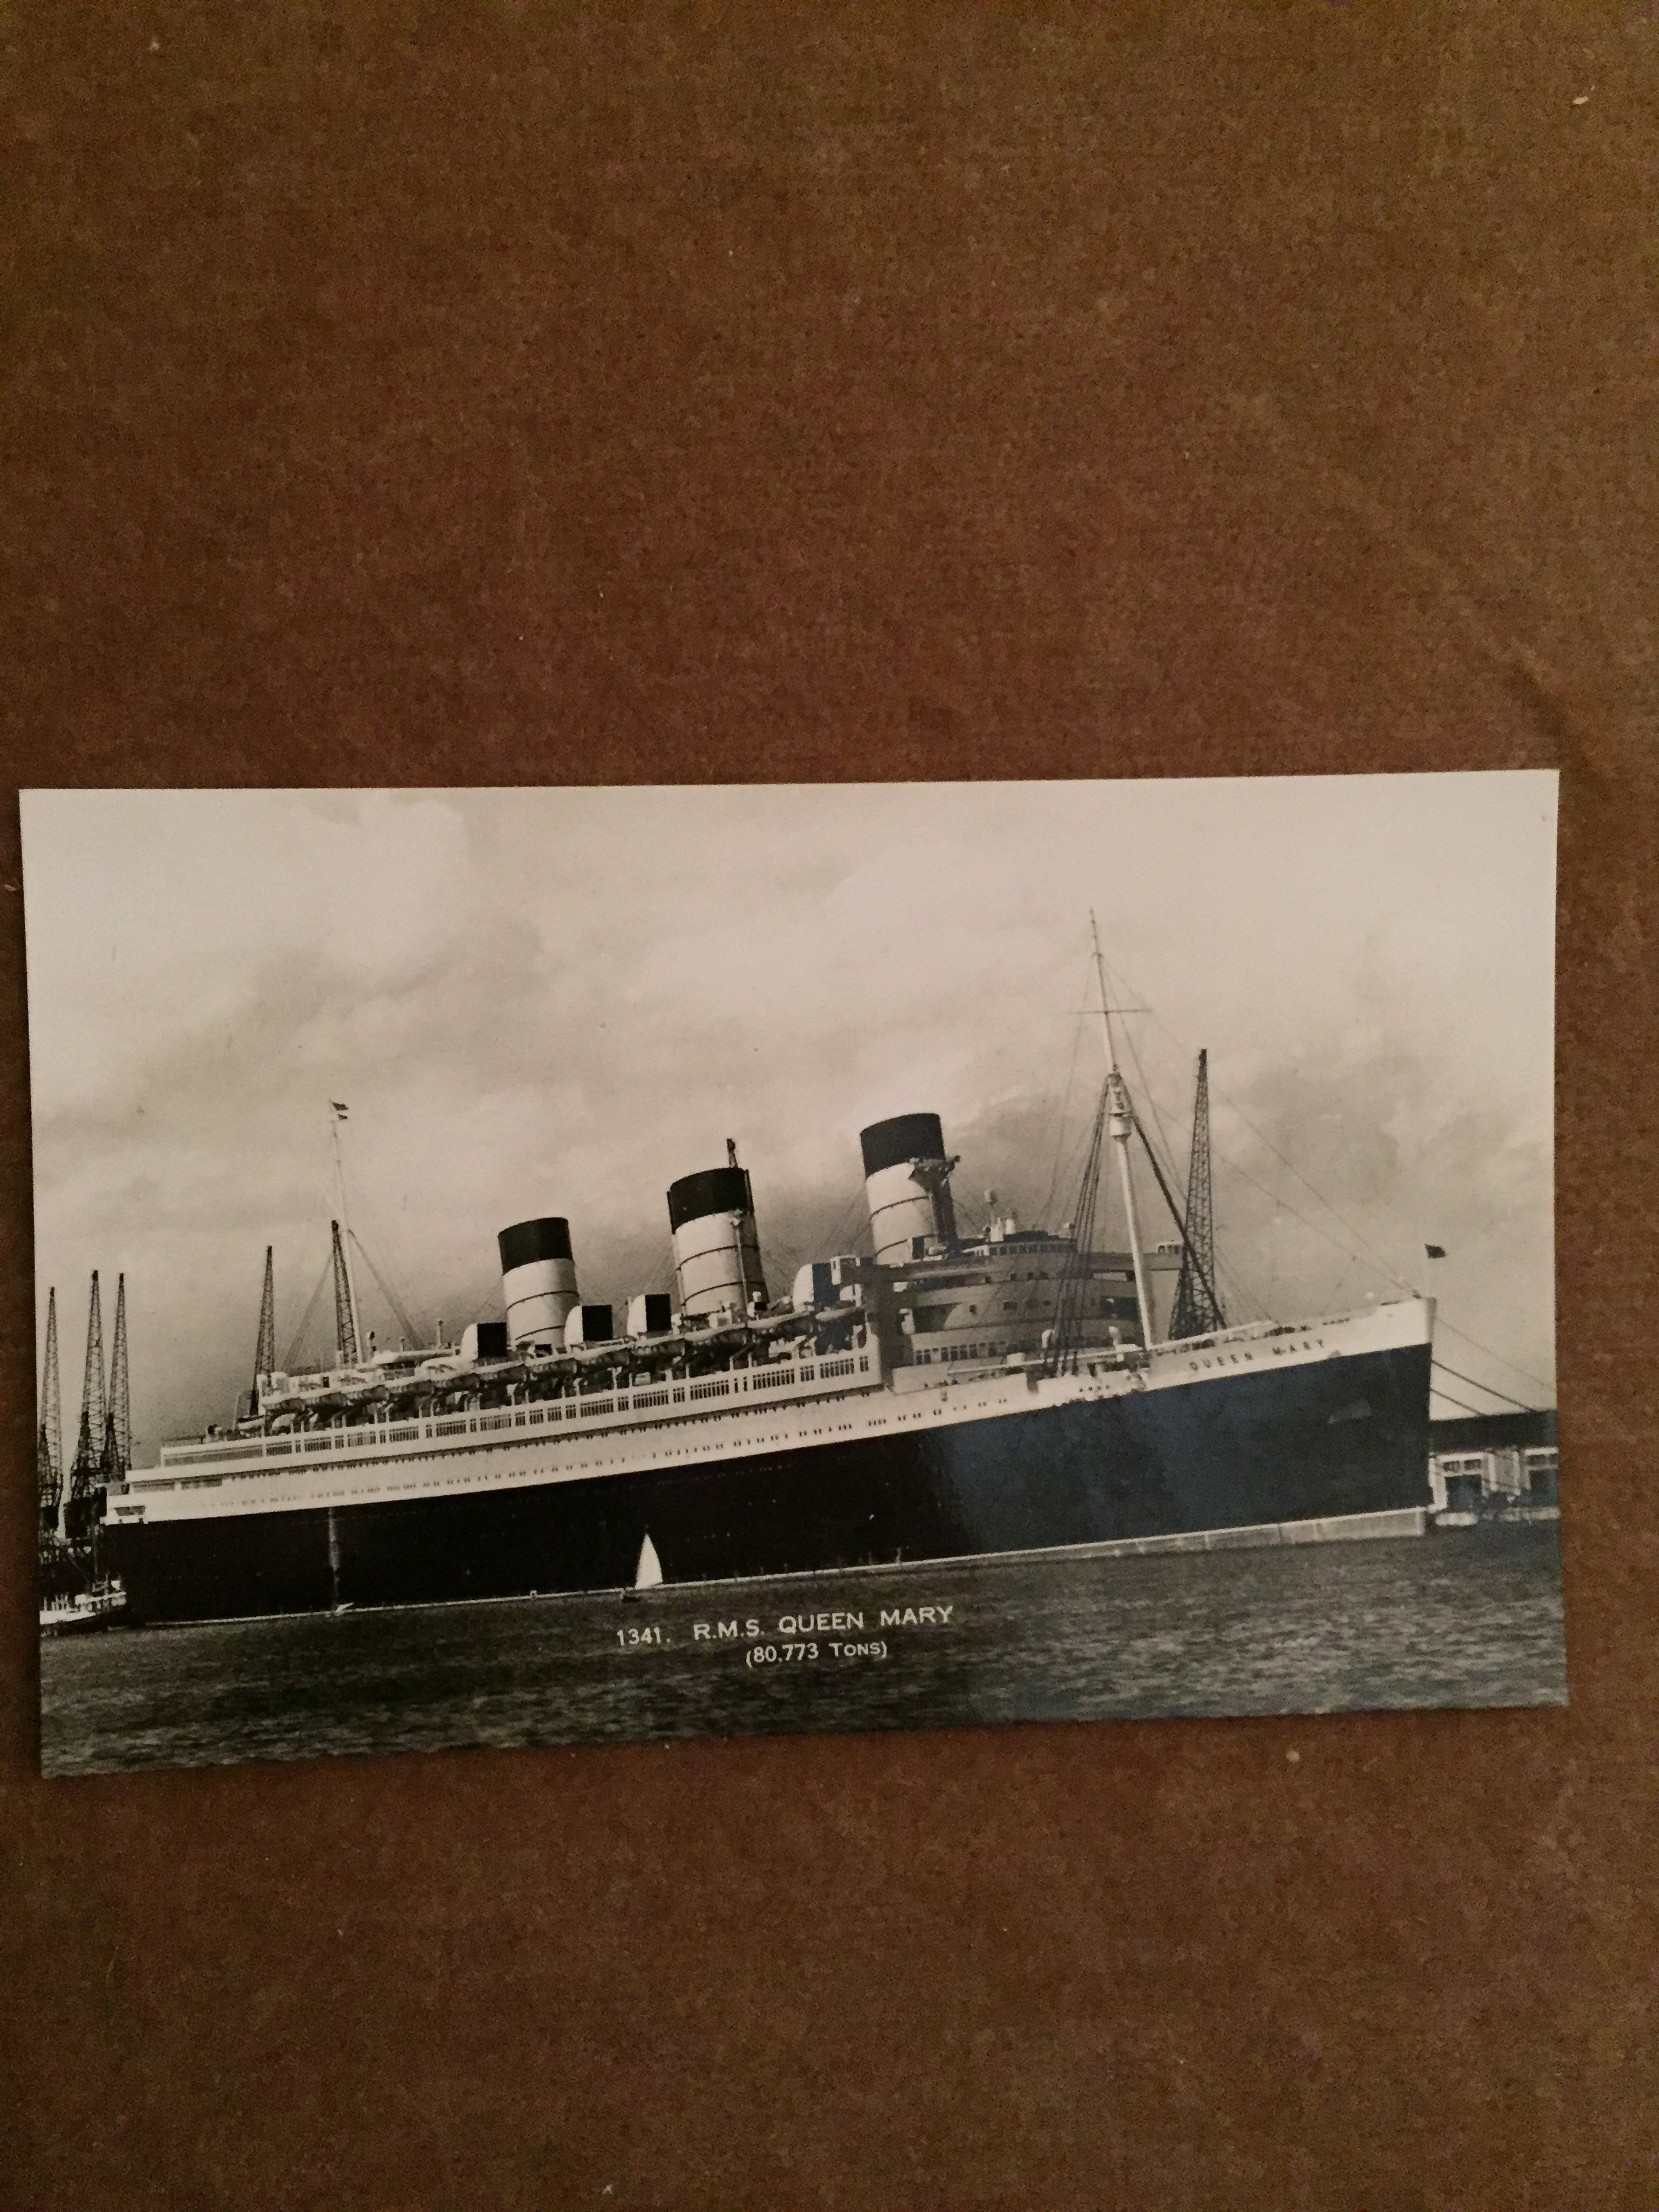 UNUSED B/W POSTCARD FROM THE VERY FAMOUS OLD CUNARD LINE VESSEL THE QUEEN MARY